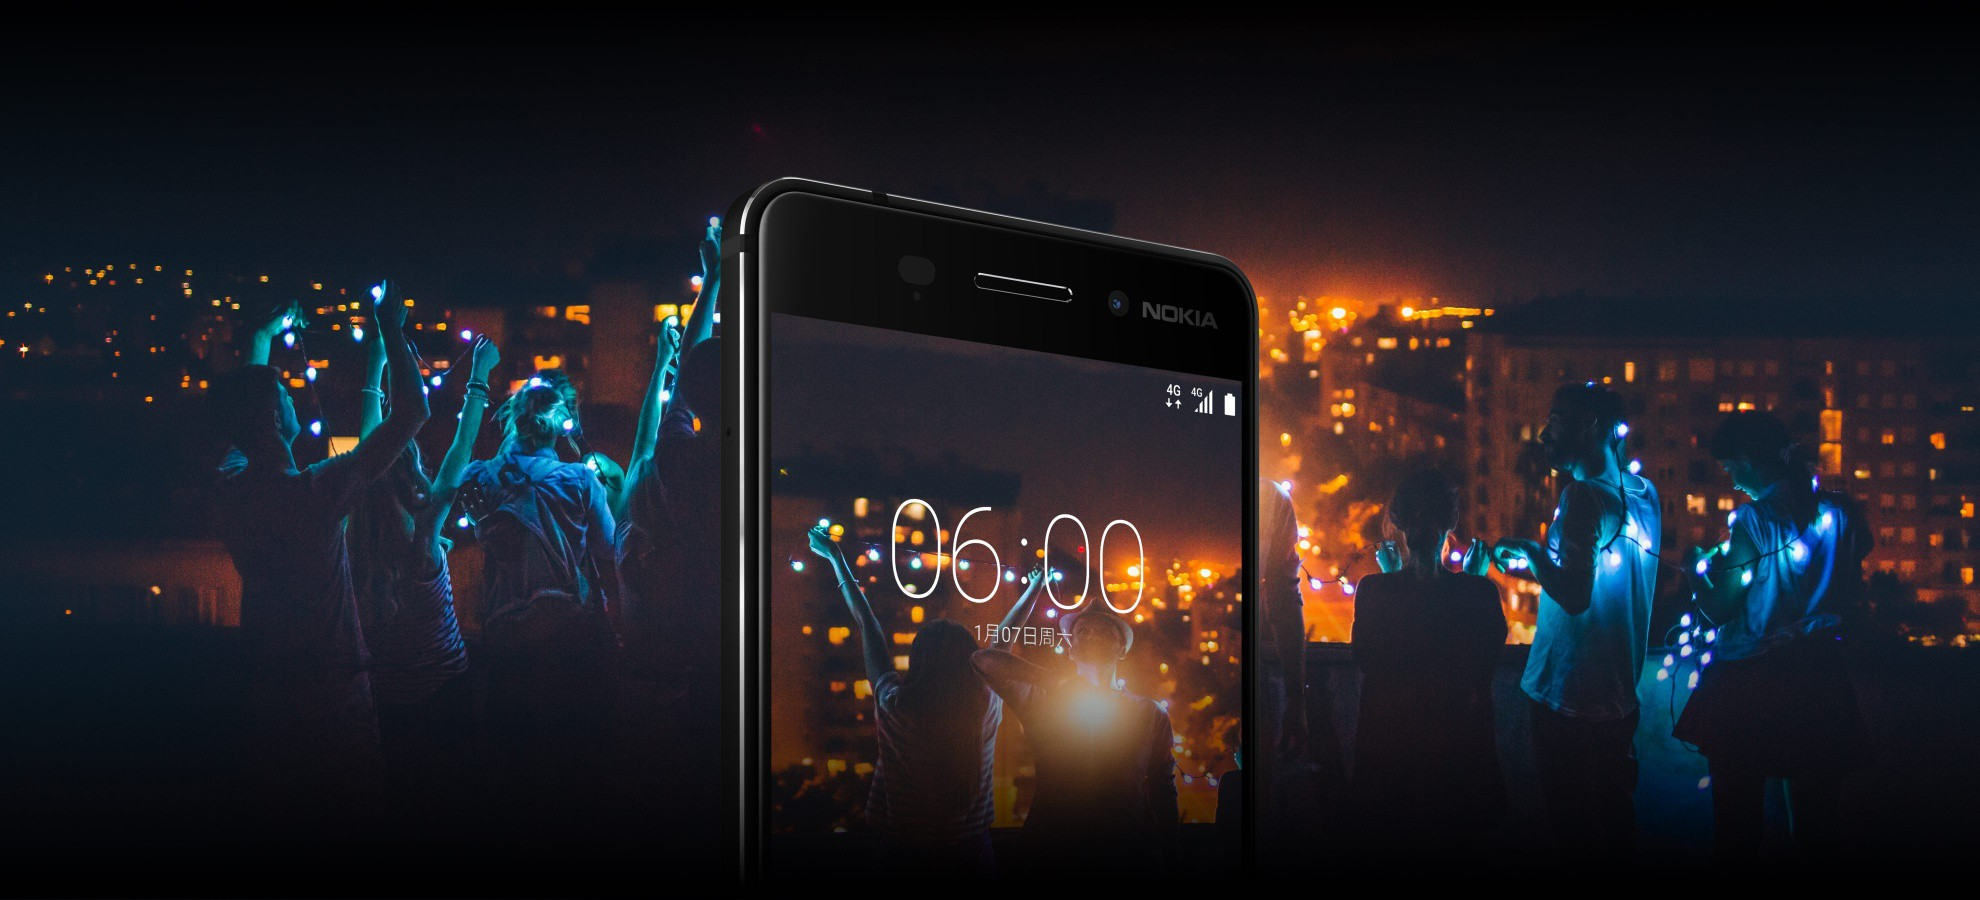 Finally HMD Global Announces Nokia 6 At China